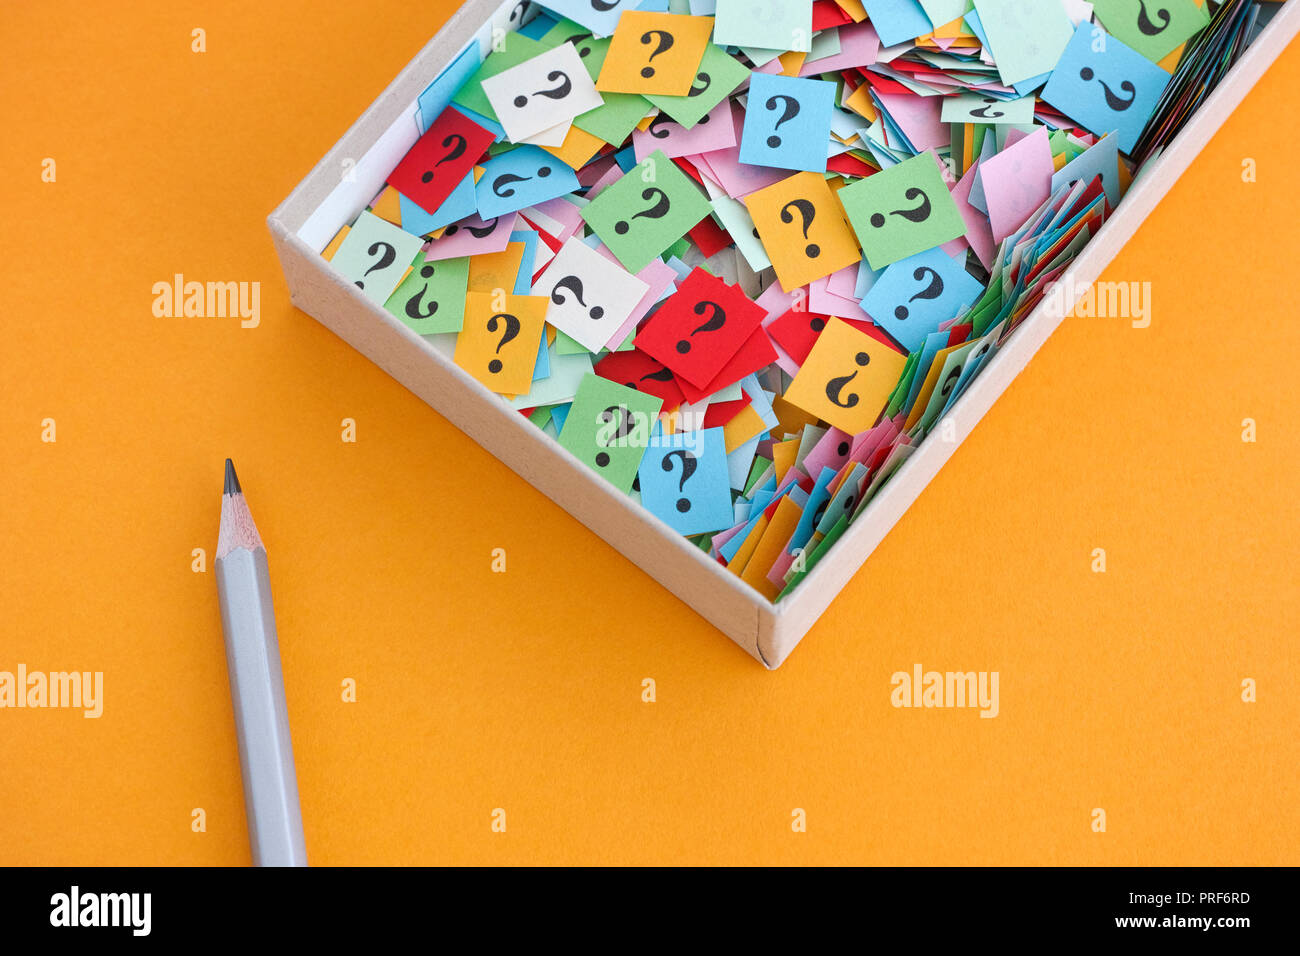 Pencil and question marks in a paper box on yellow background. Concept image. Close up. Stock Photo